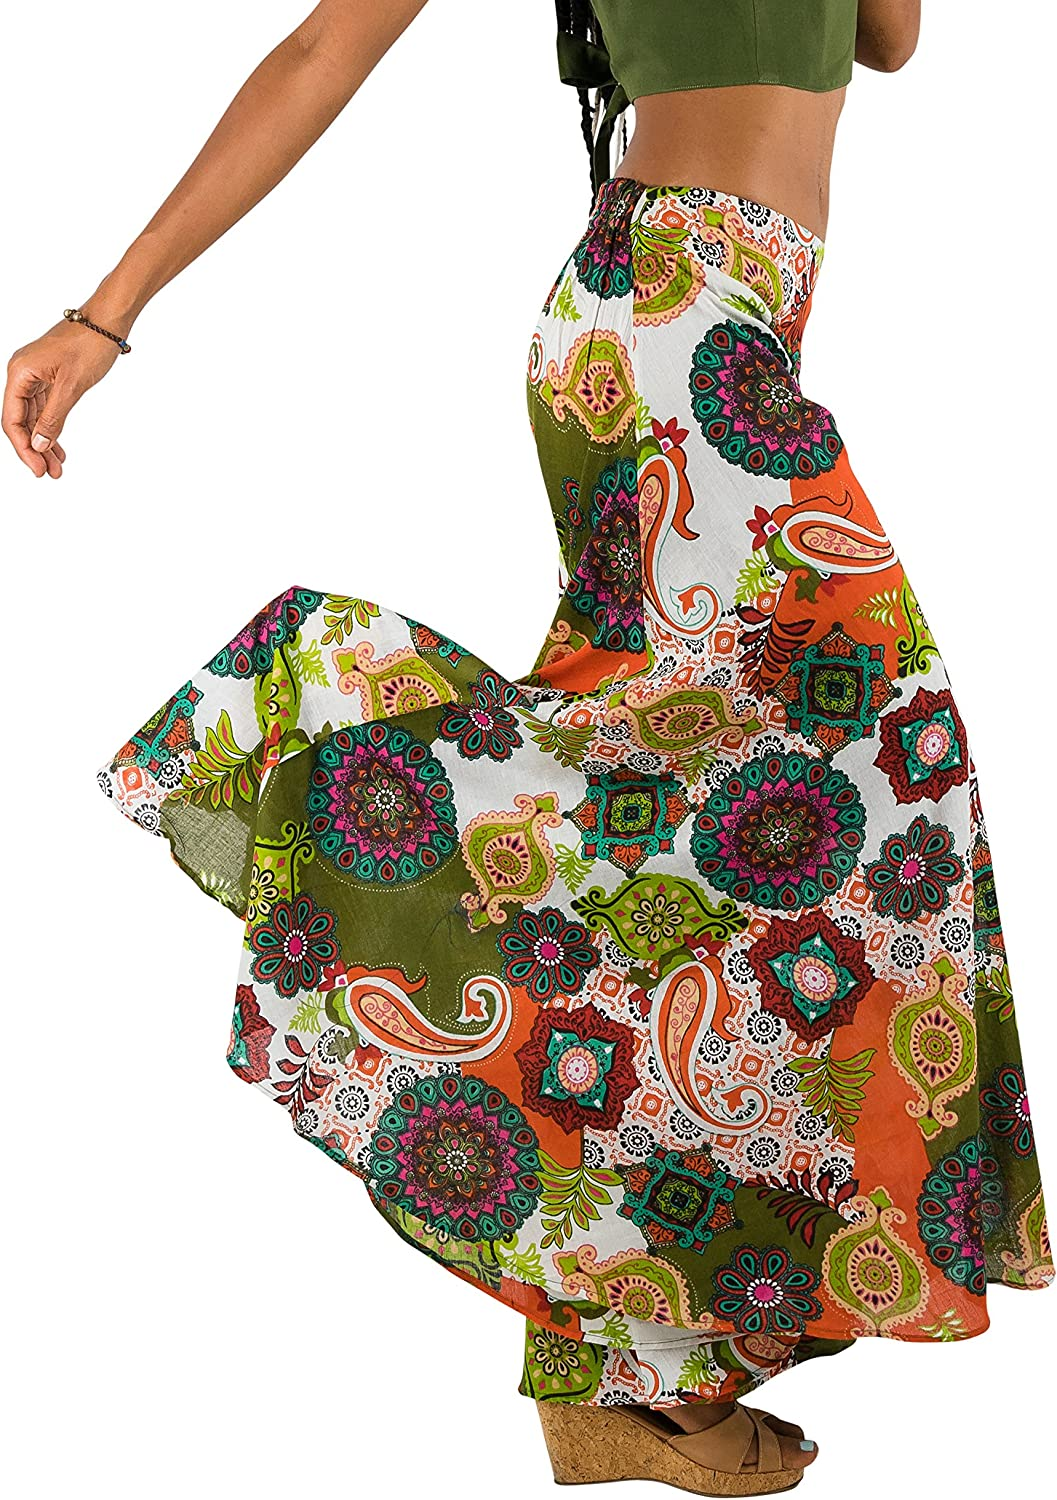 Tropic Bliss Colorful Wide-Leg Palazzo Pants for Women, Fair Trade, Boho Hippie Style Skirt Pant